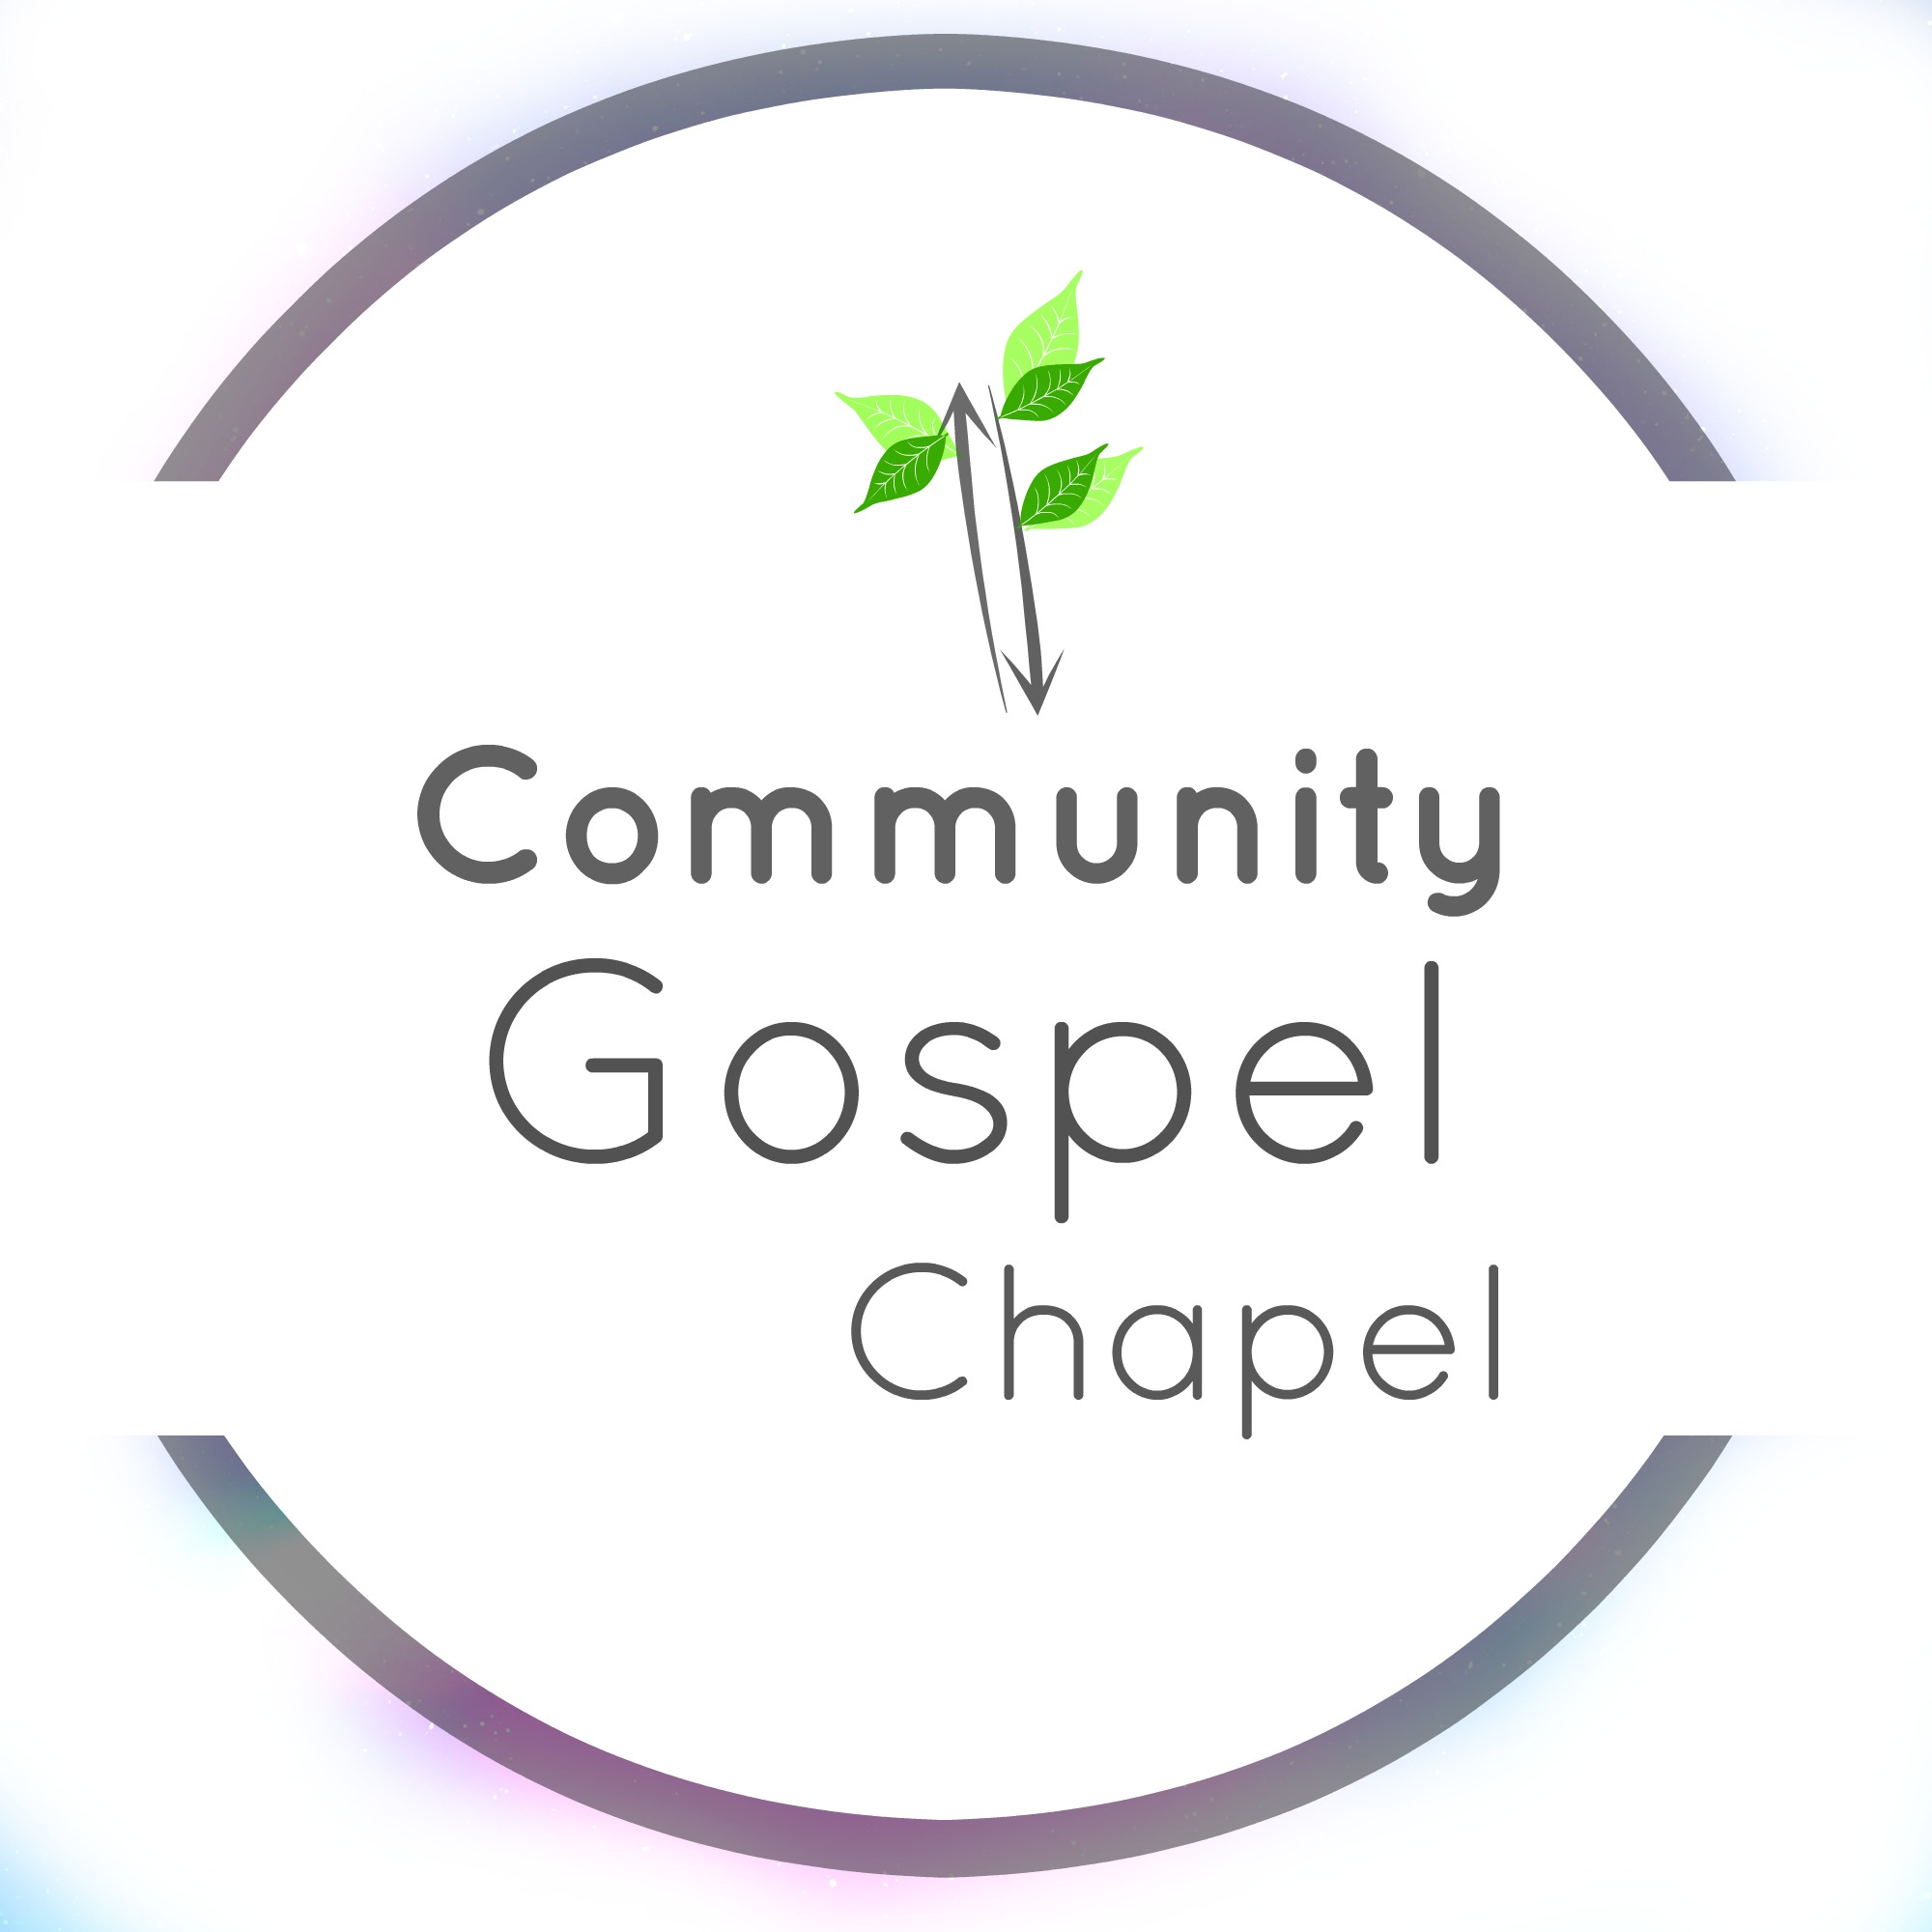 Community Gospel Chapel